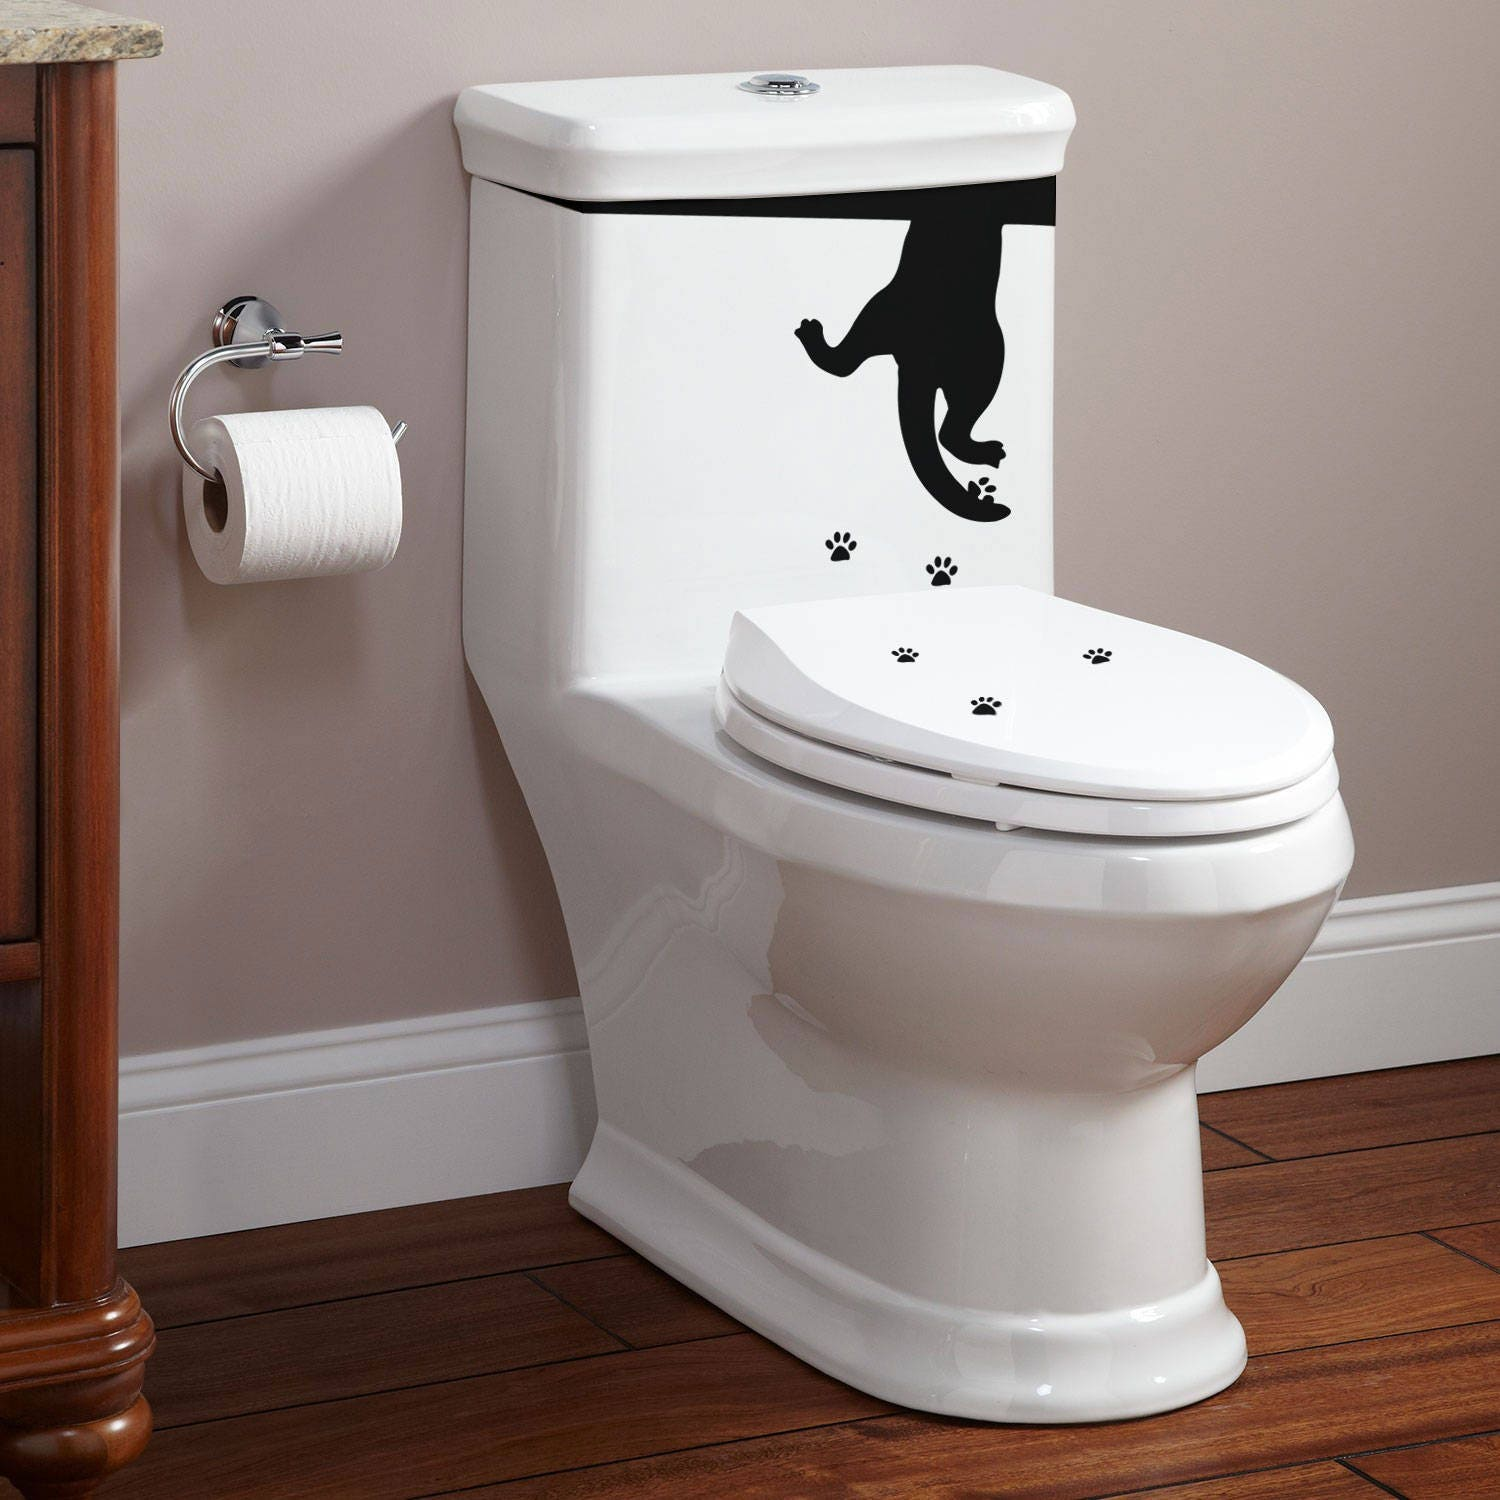 Toilet Decor Decal Set - The cat drinks from the WC - Yep.. it is ...